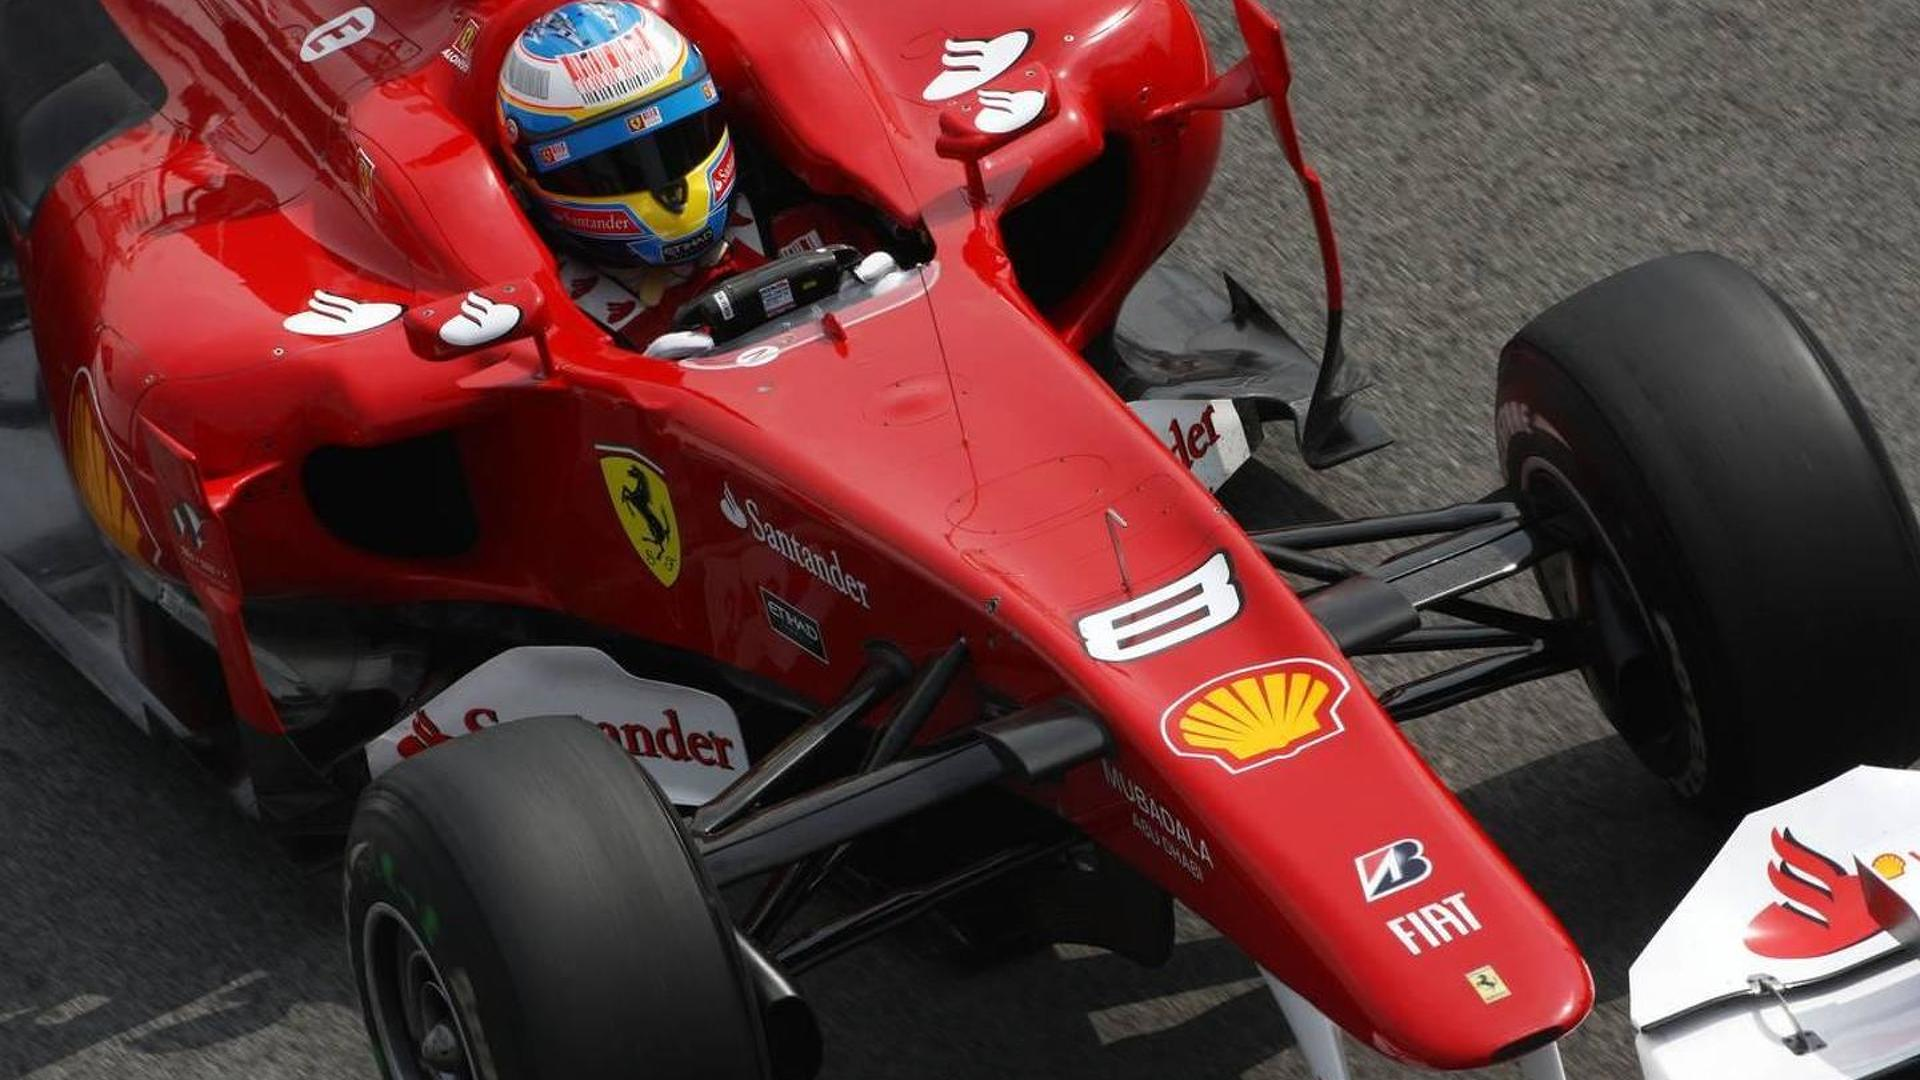 Next three races key to Ferrari's 2010 campaign